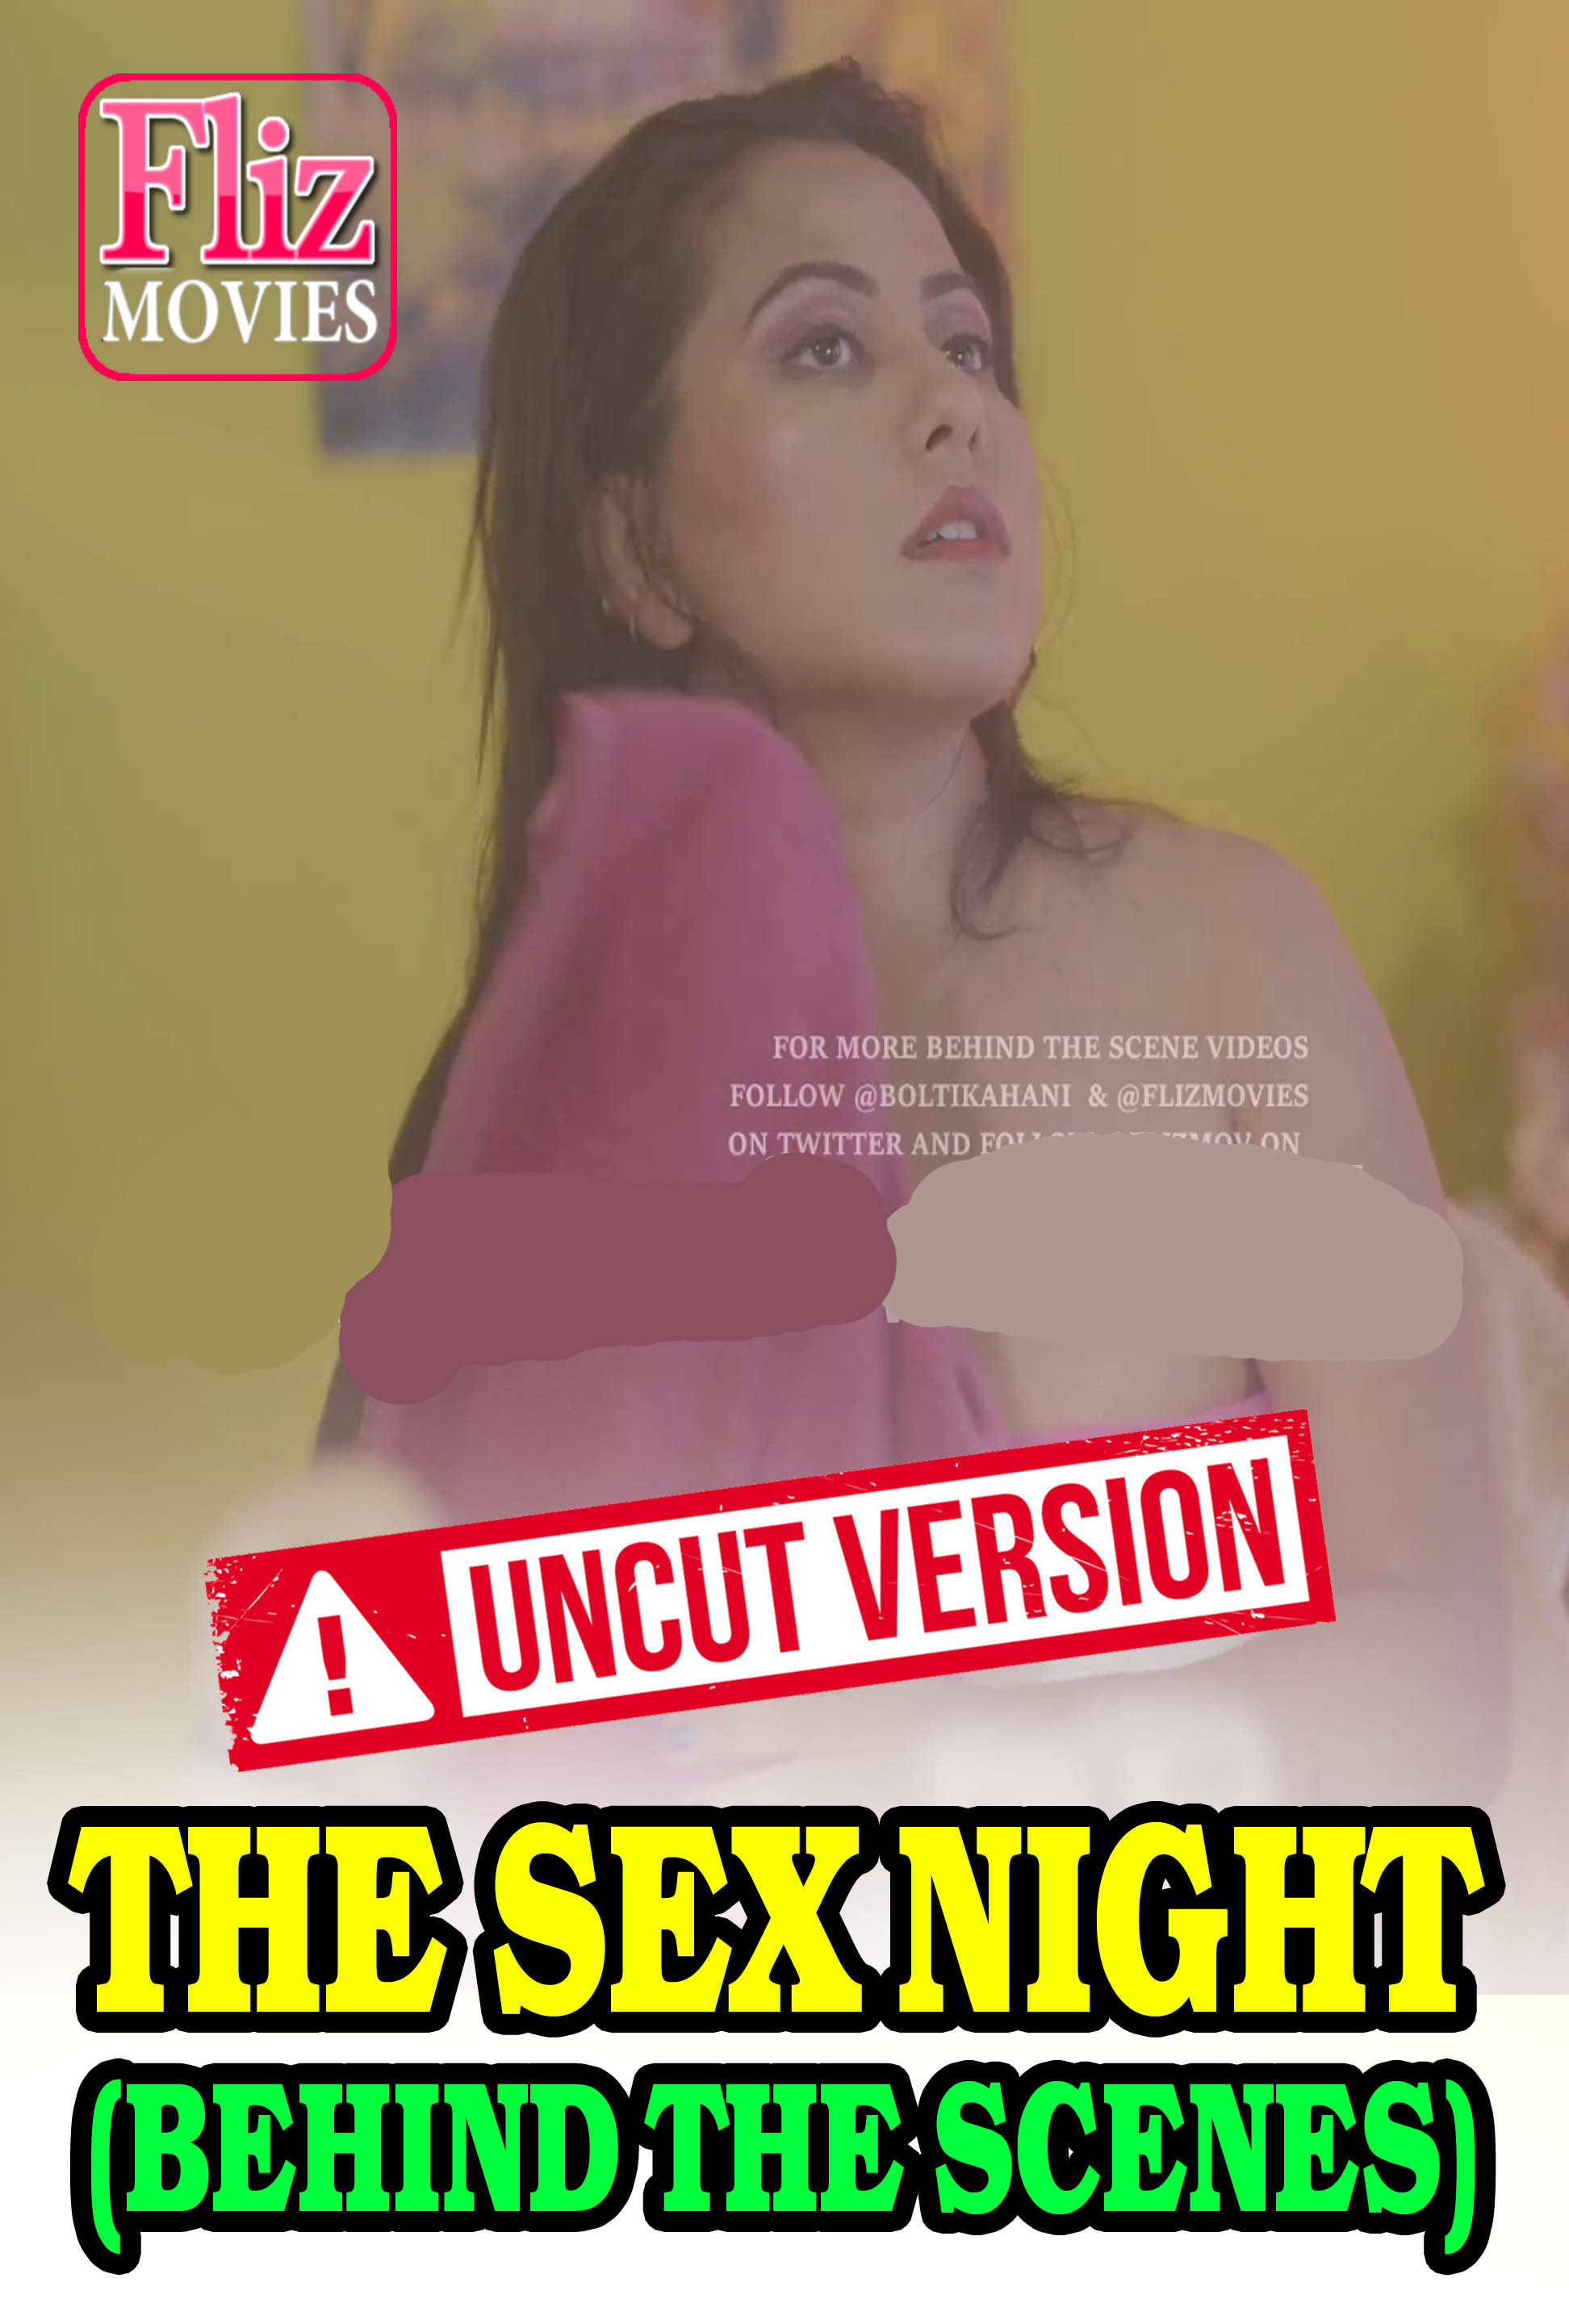 The Sex Night (Behind The Scenes) 2020 Uncut Vers Hindi Flizmovies Web Series 720p HDRip 350MB Download